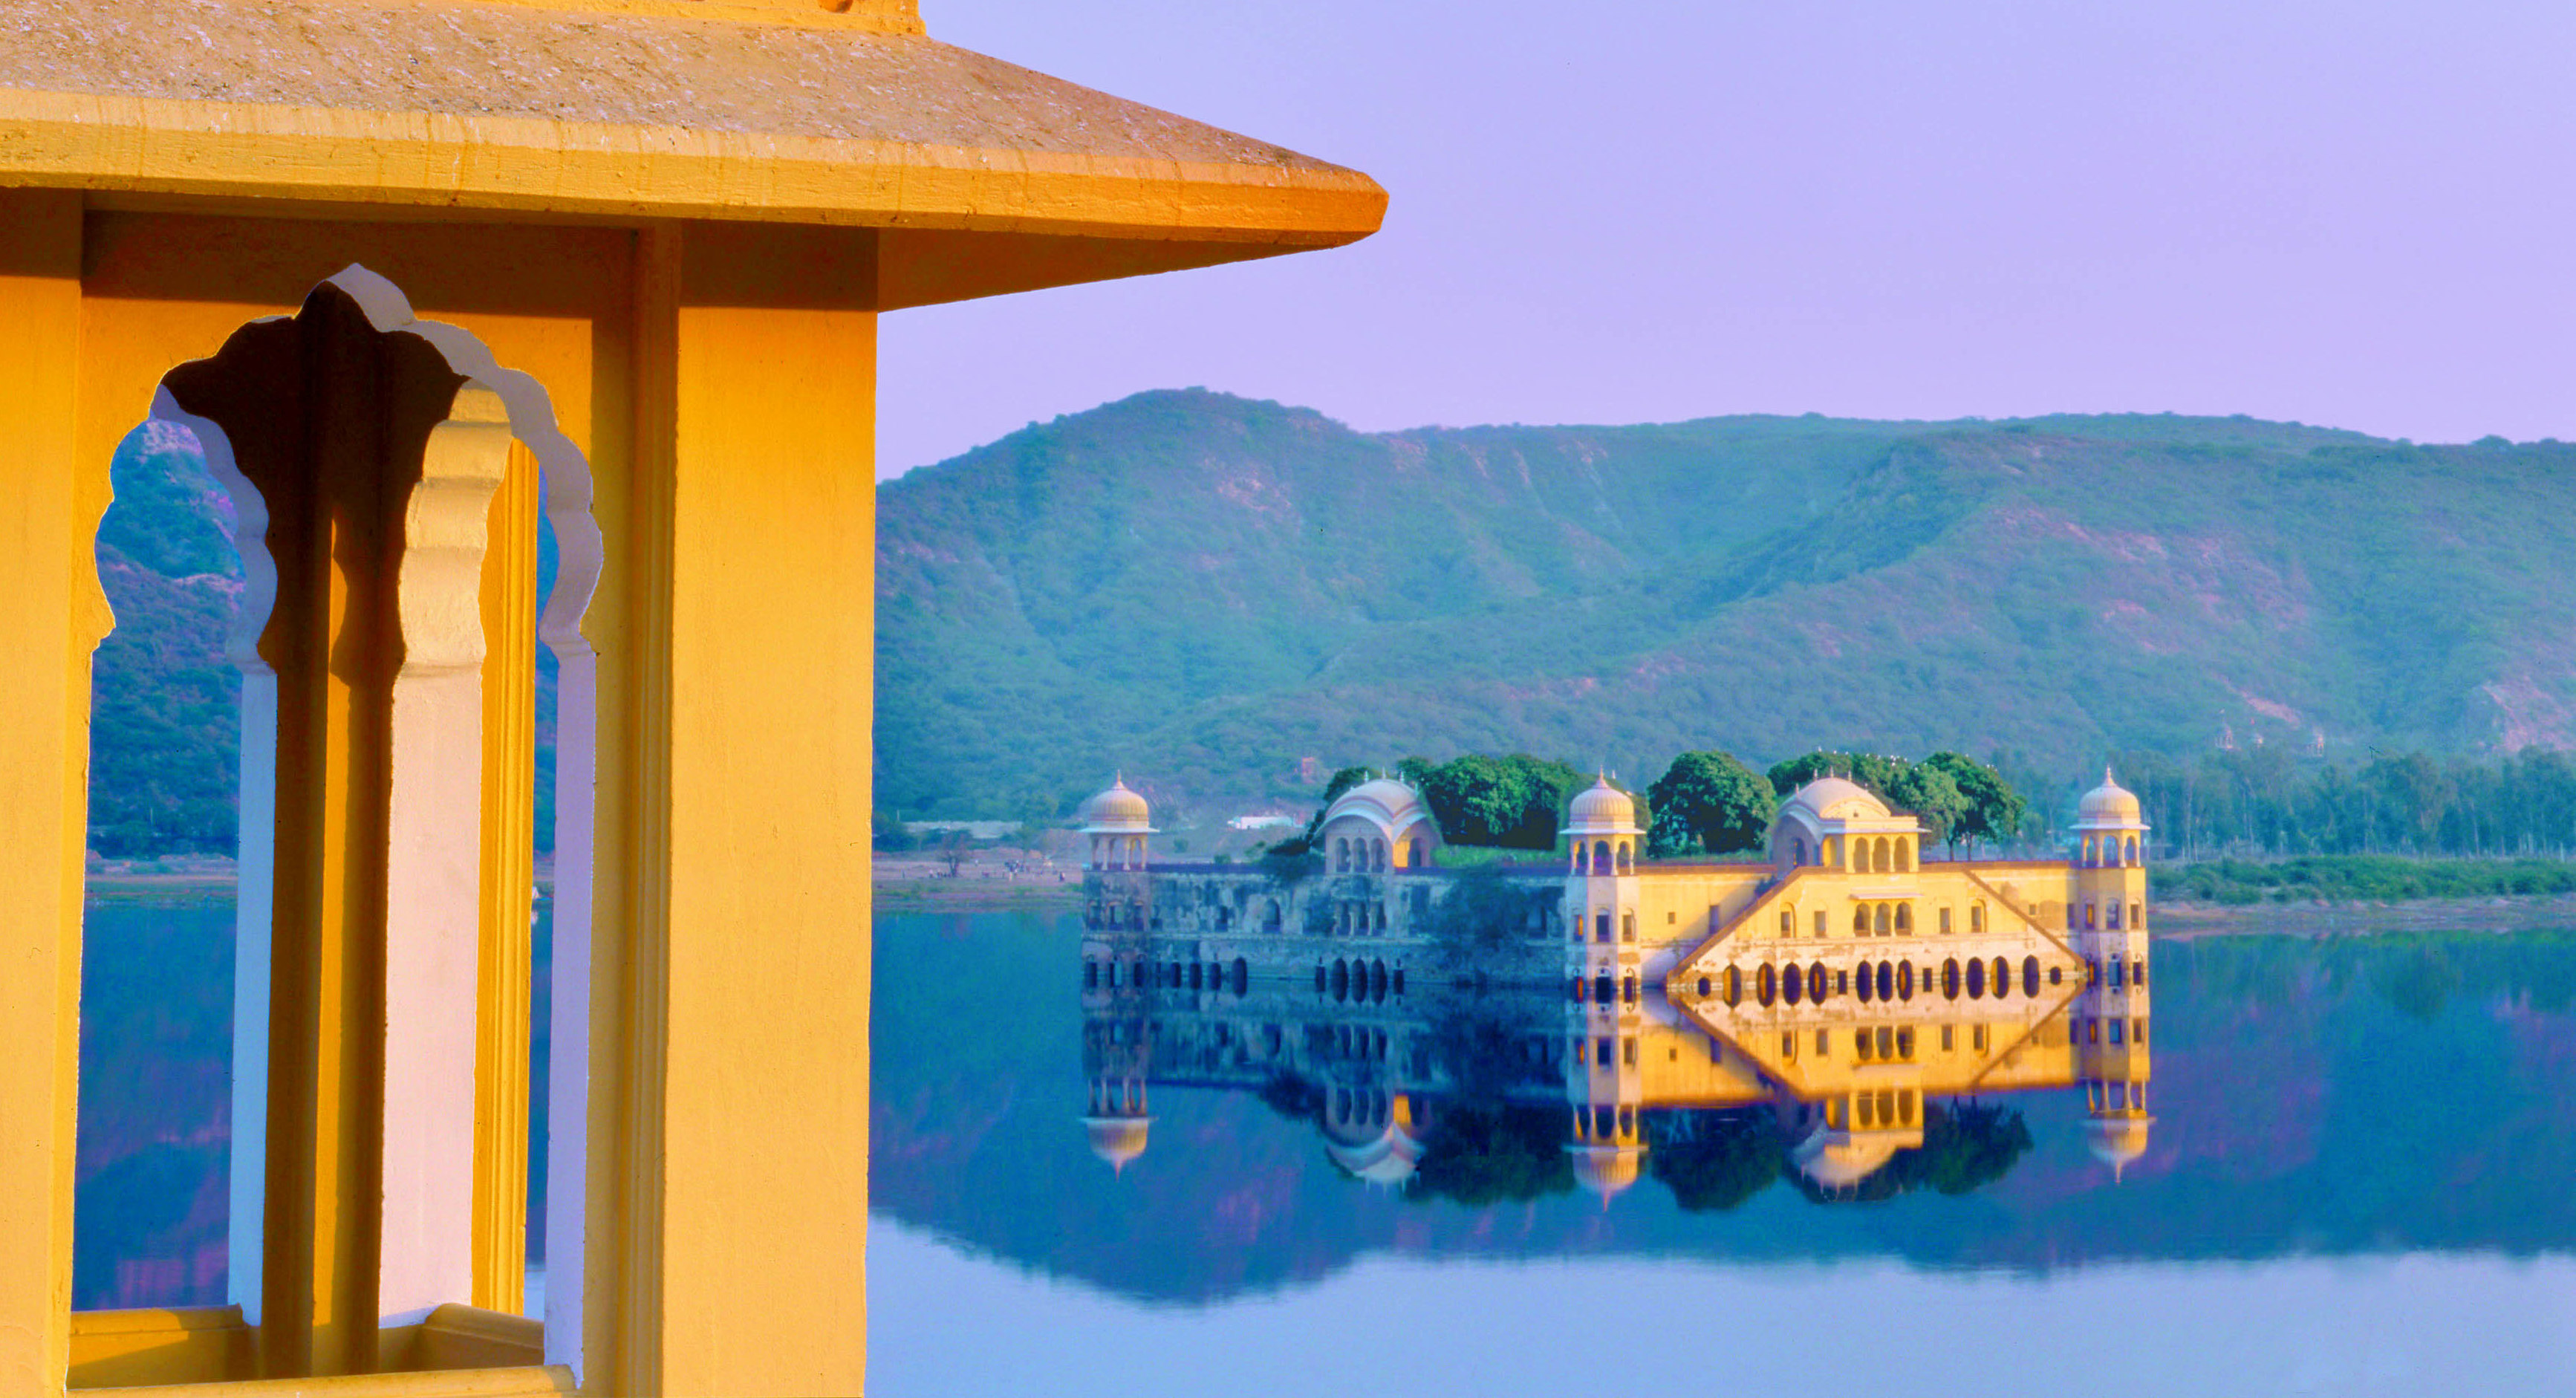 jal-mahal-view